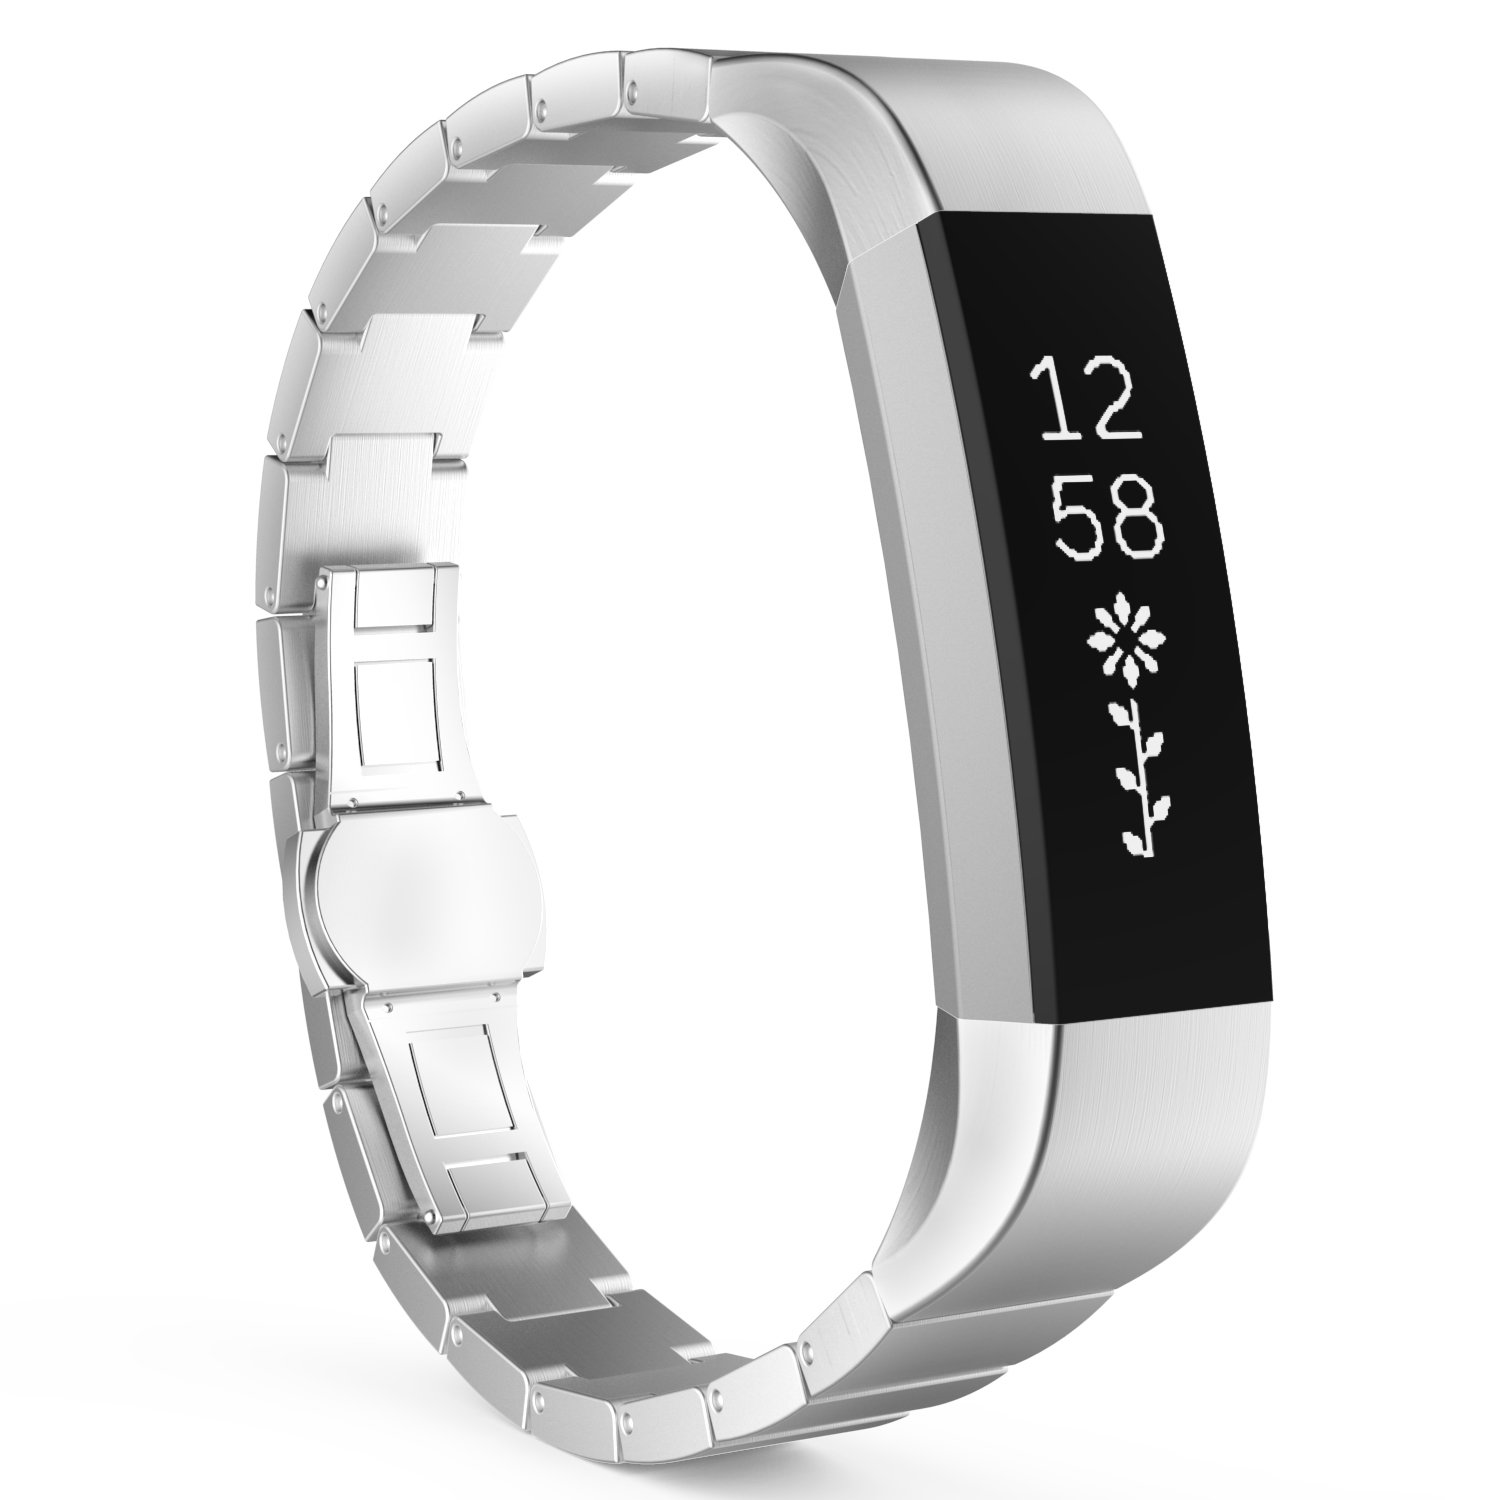 MoKo Fitbit Alta HR and Alta Band, Stainless Steel Replacement Smart Watch Wrist Strap Bracelet with Butterfly Buckle Clasp for Fitbit Alta/Fitbit Alta HR, Fits 5.11''-8.07'' Wrist, Silver by MoKo